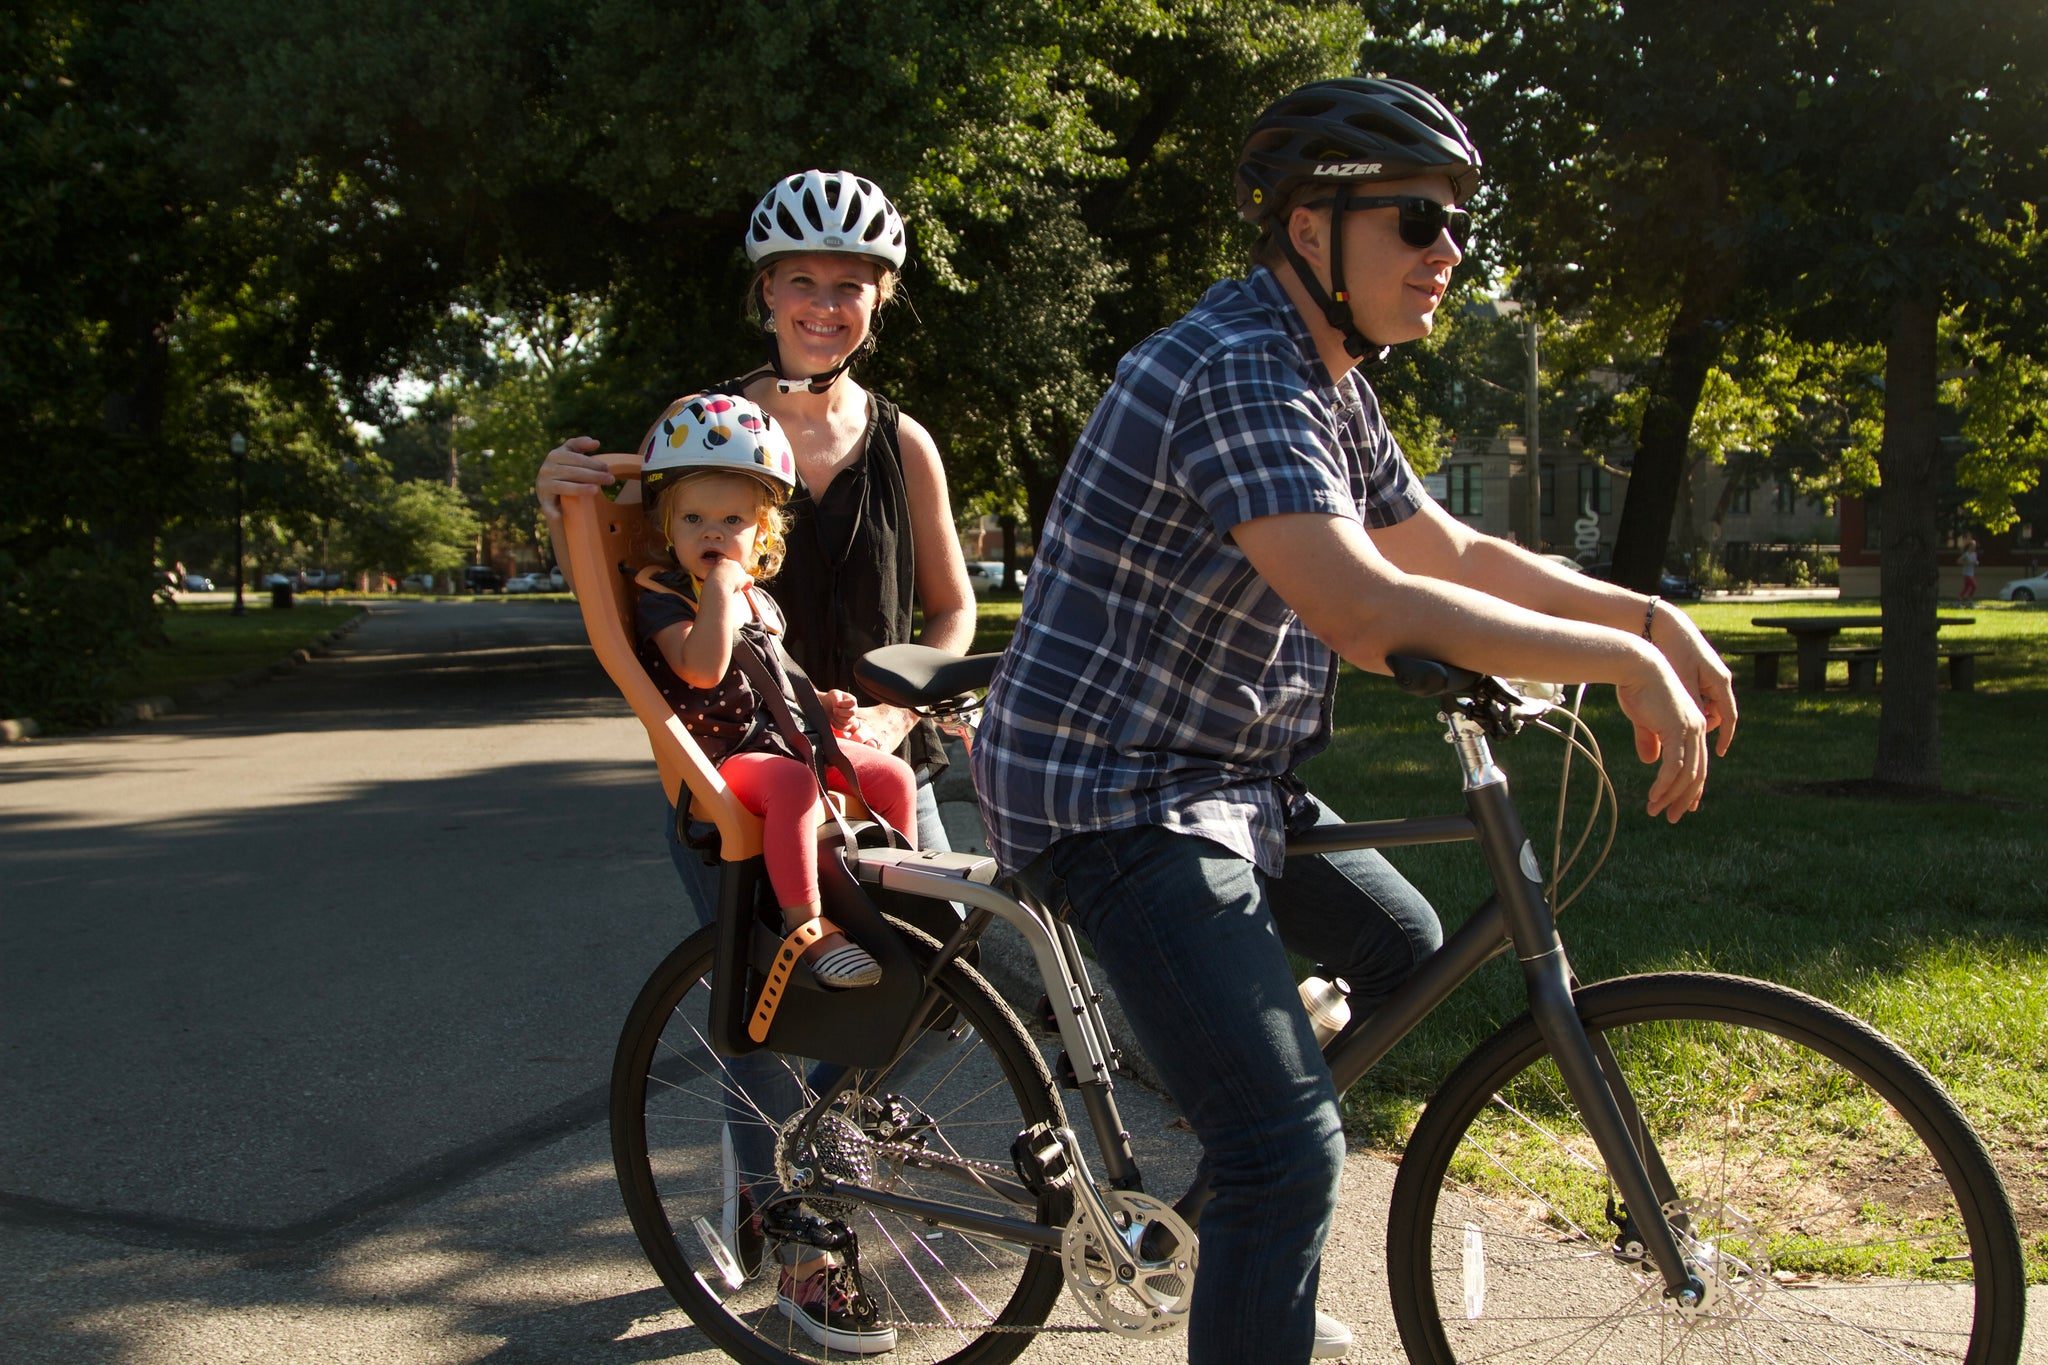 Family Bike Rides: 4 Helpful Tips for Biking with Kids